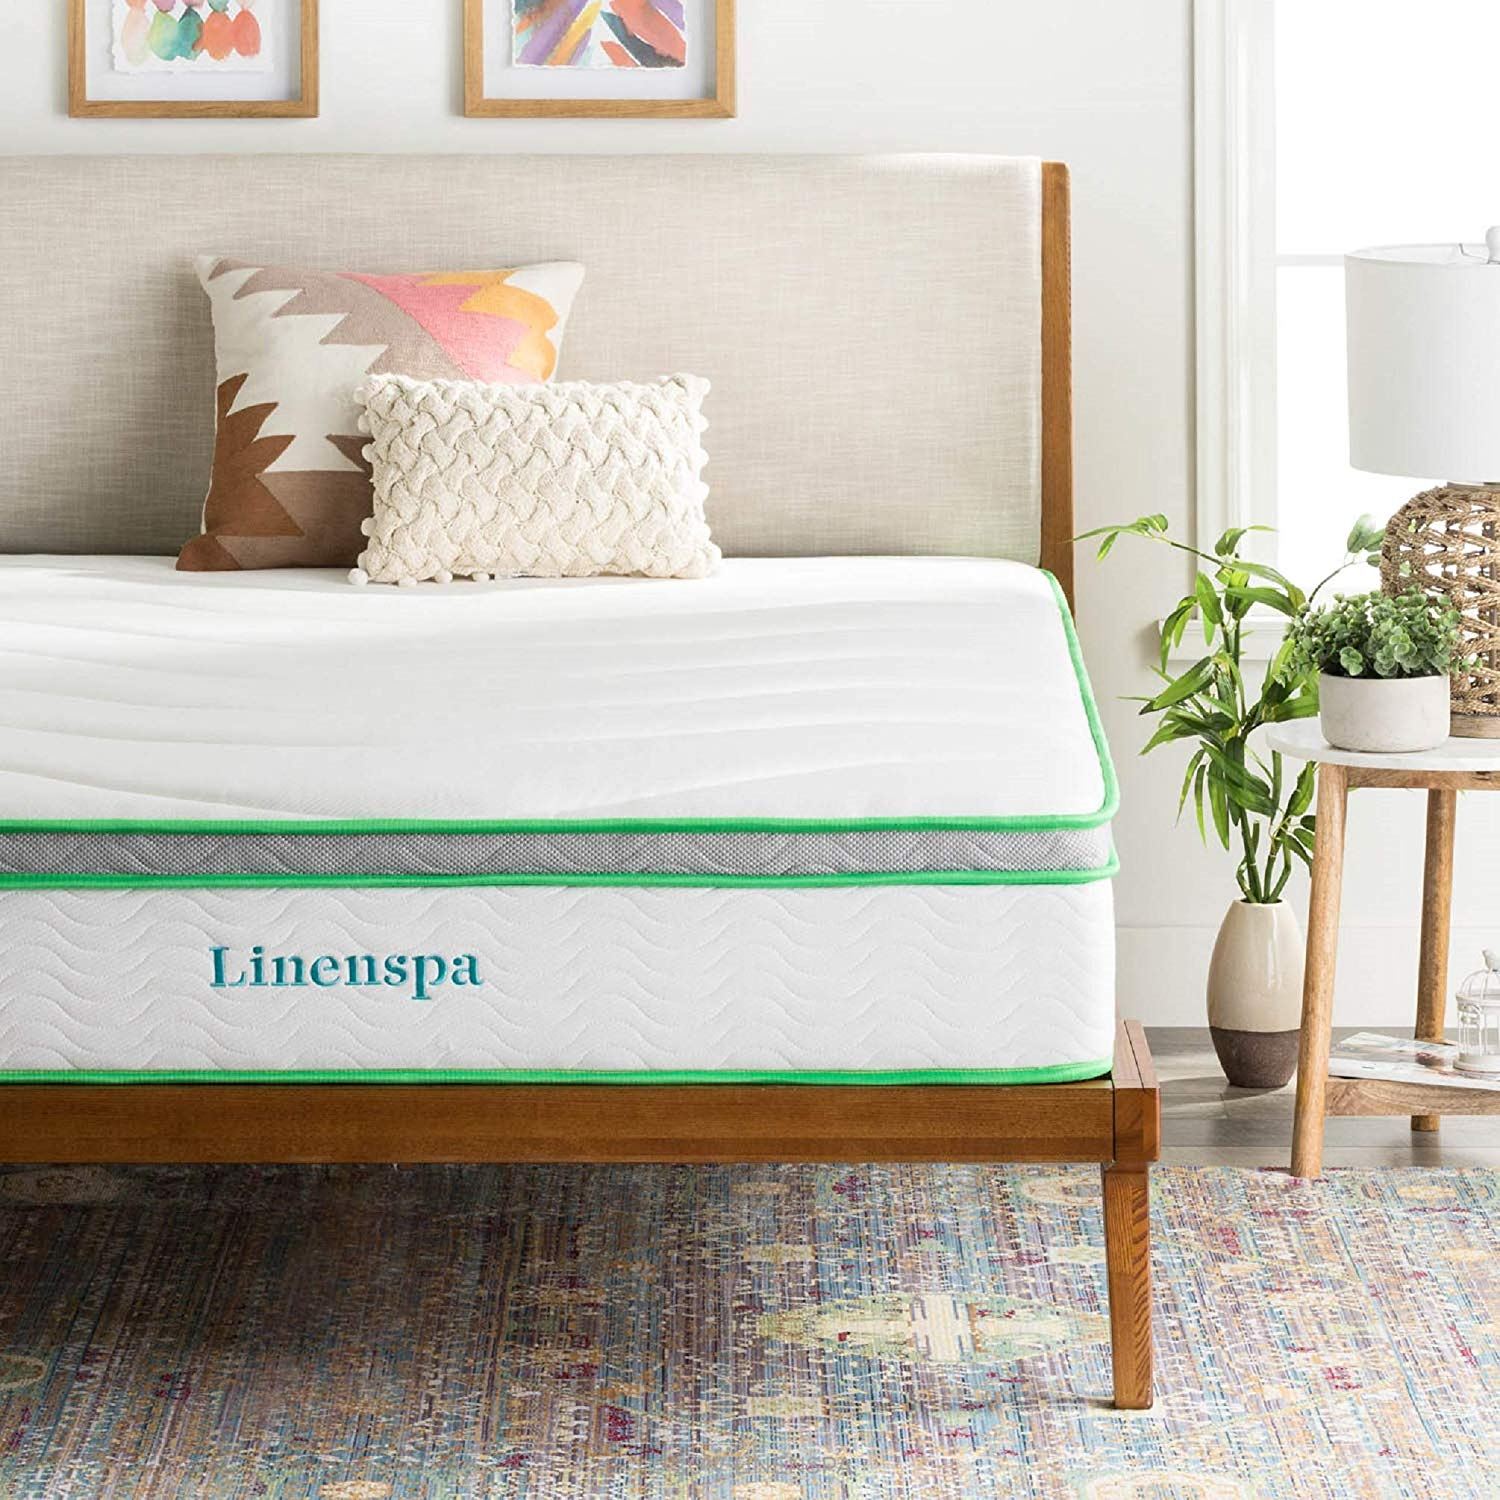 Linenspa Best Mattress For Hip Pain Review by www.snoremagazine.com